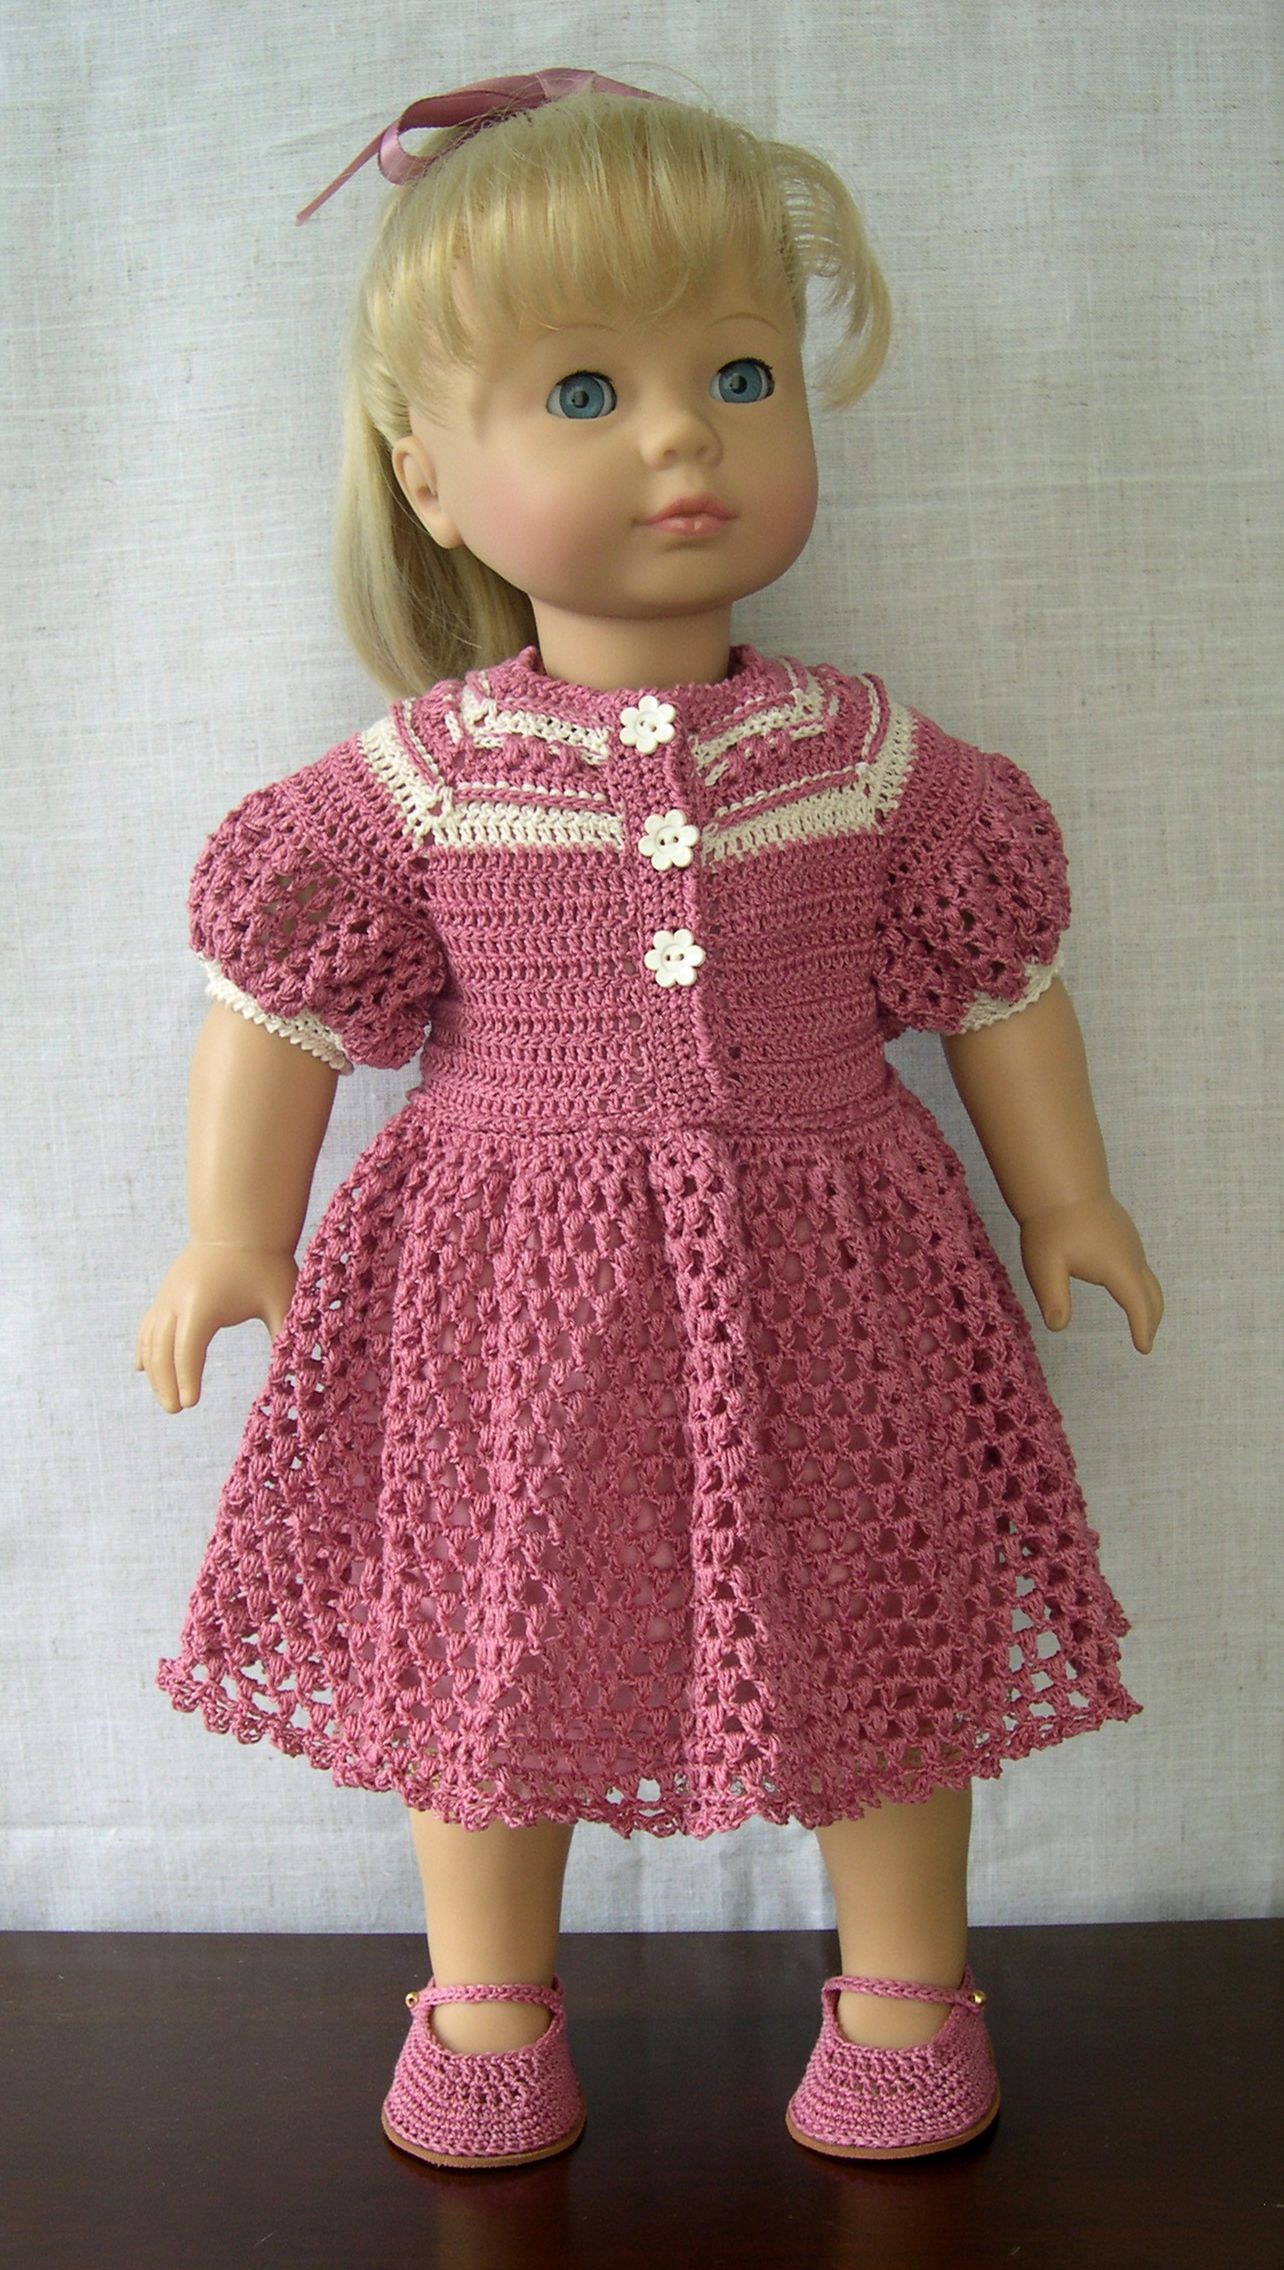 Crocheting Doll Clothes : 18 inch Doll Clothes Handmade outfit made to fit 18 dolls like ...